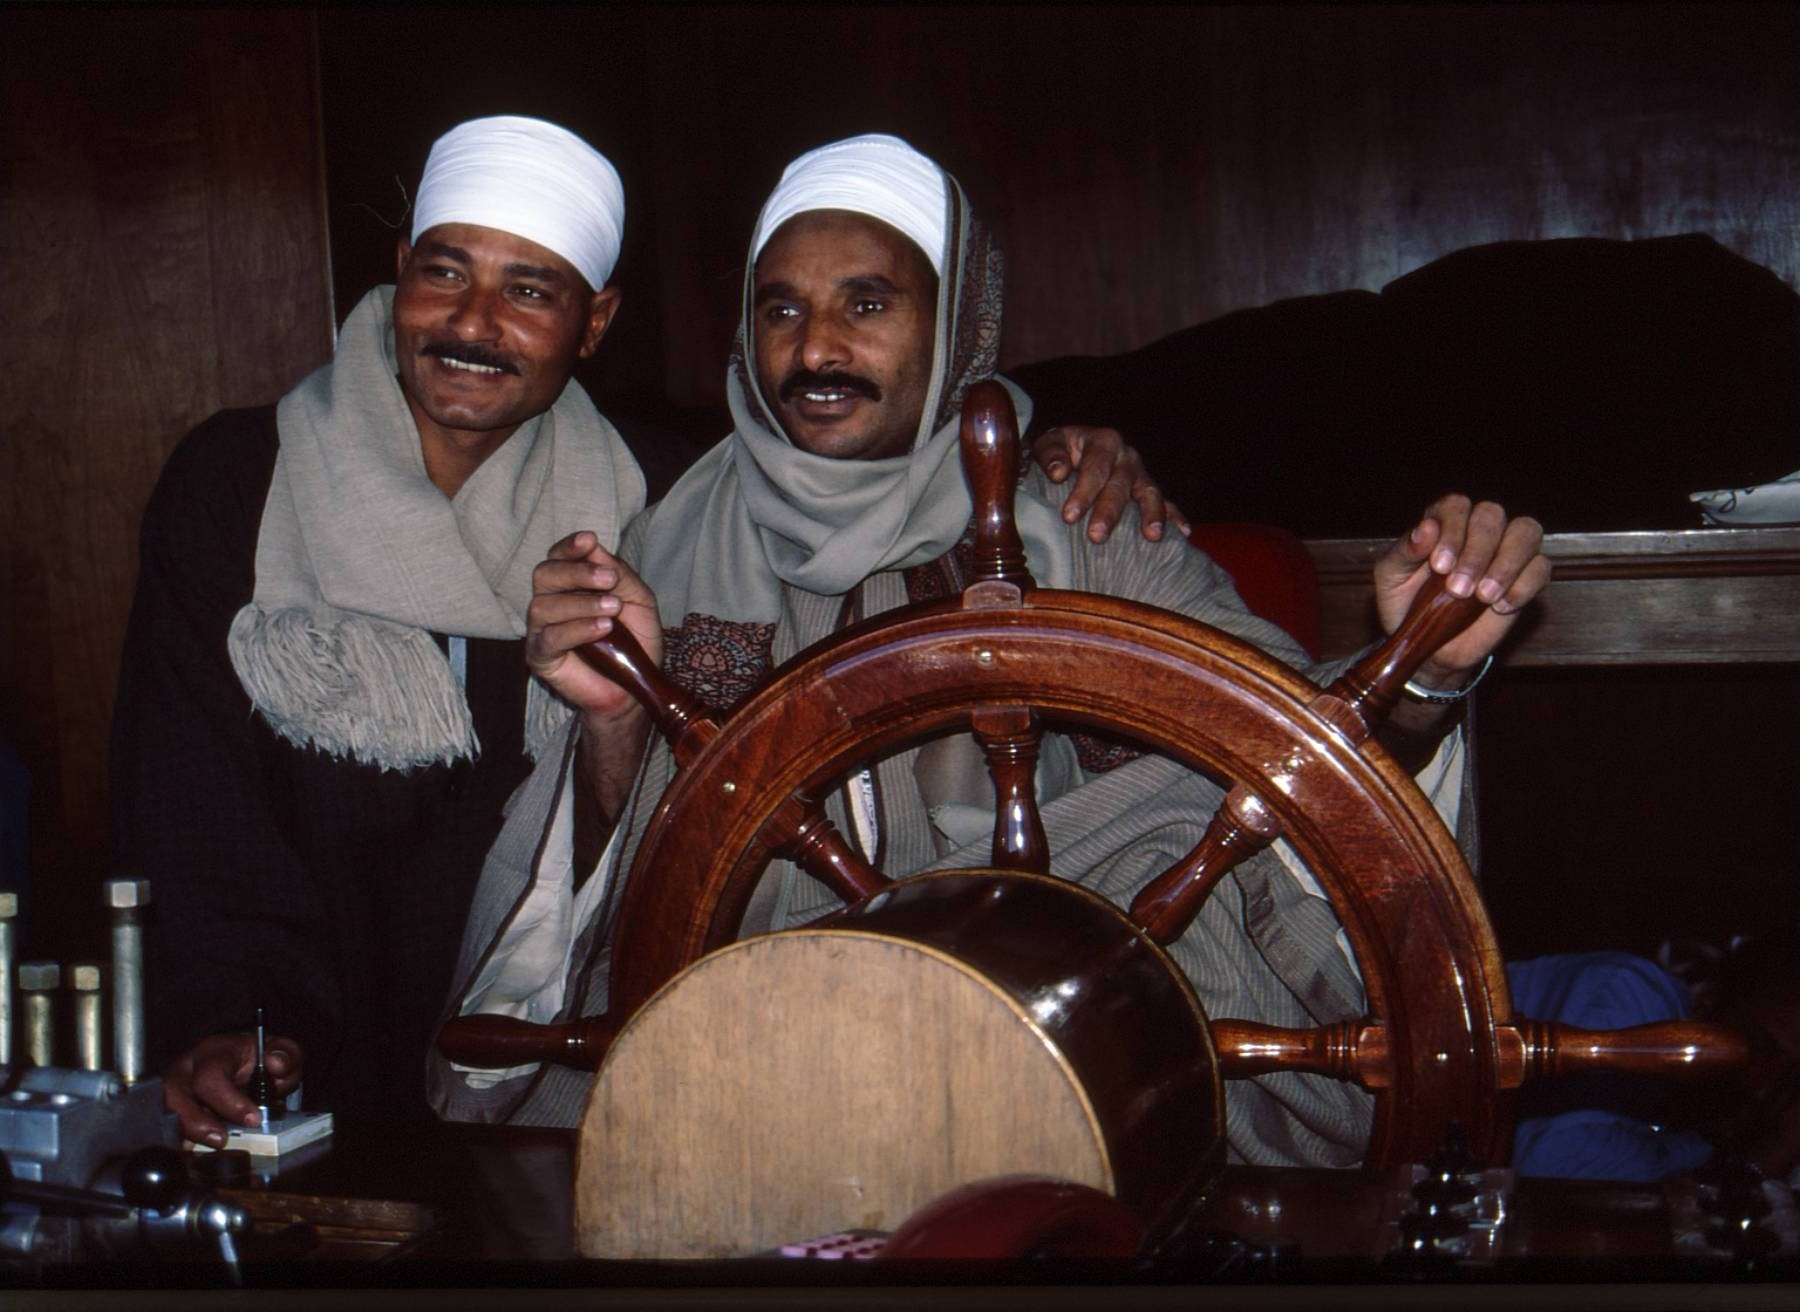 Nile River pilots in traditional Egyptian attire